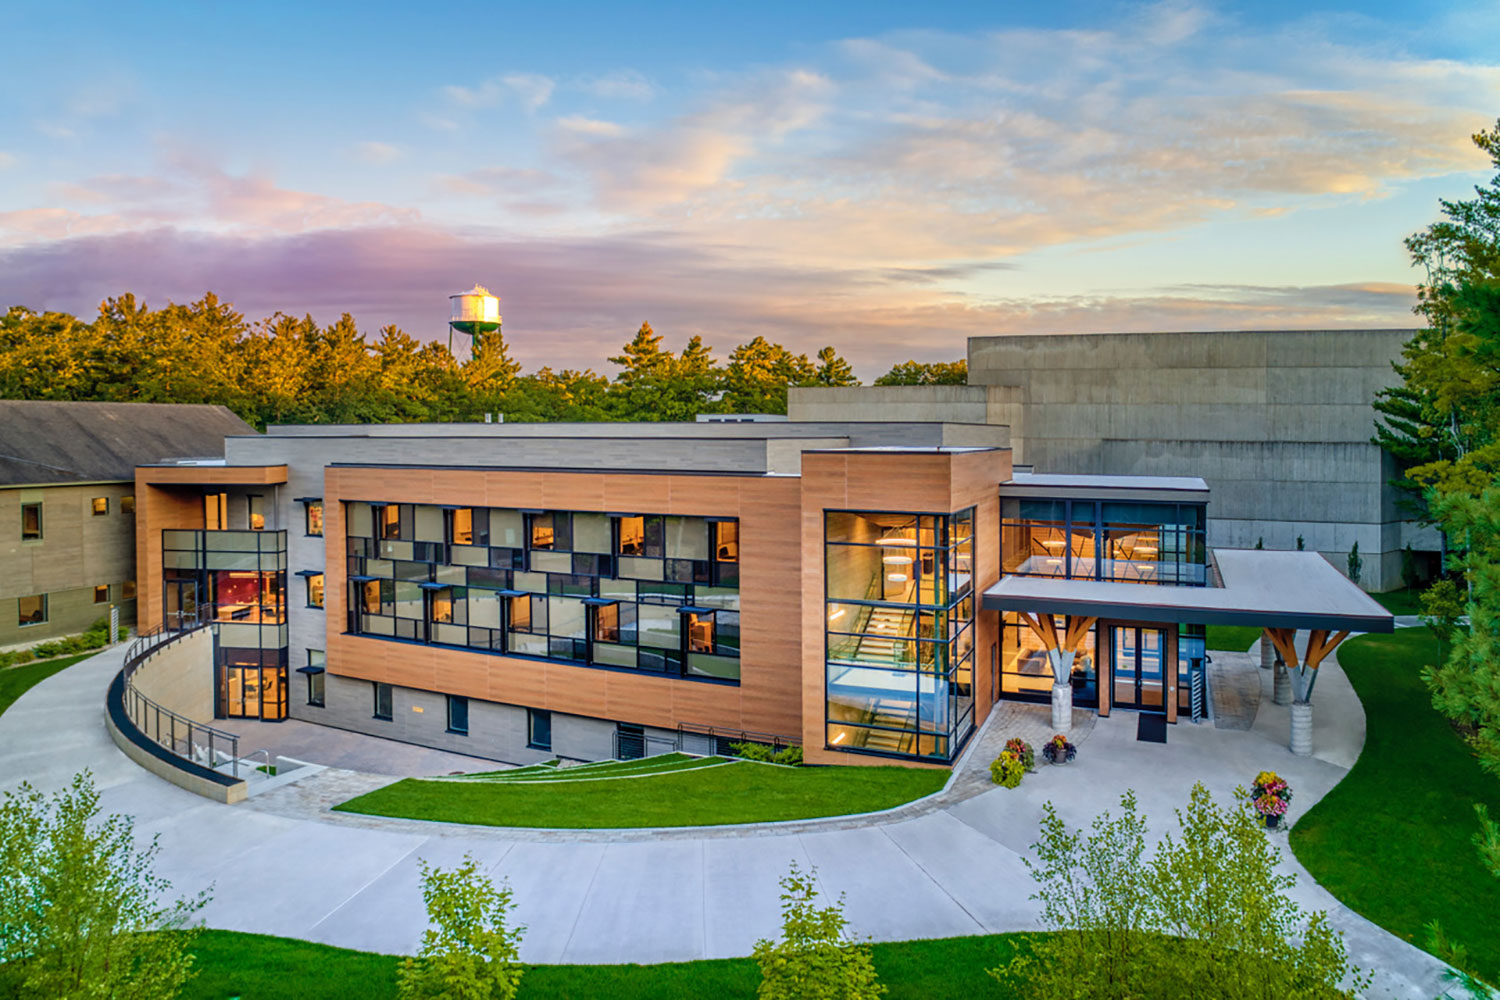 Interlochen has recently completed their new complex. A key component of the new complex is a state-of-the-art recording/teaching studio complex developed by WSDG. Exterior Photo.